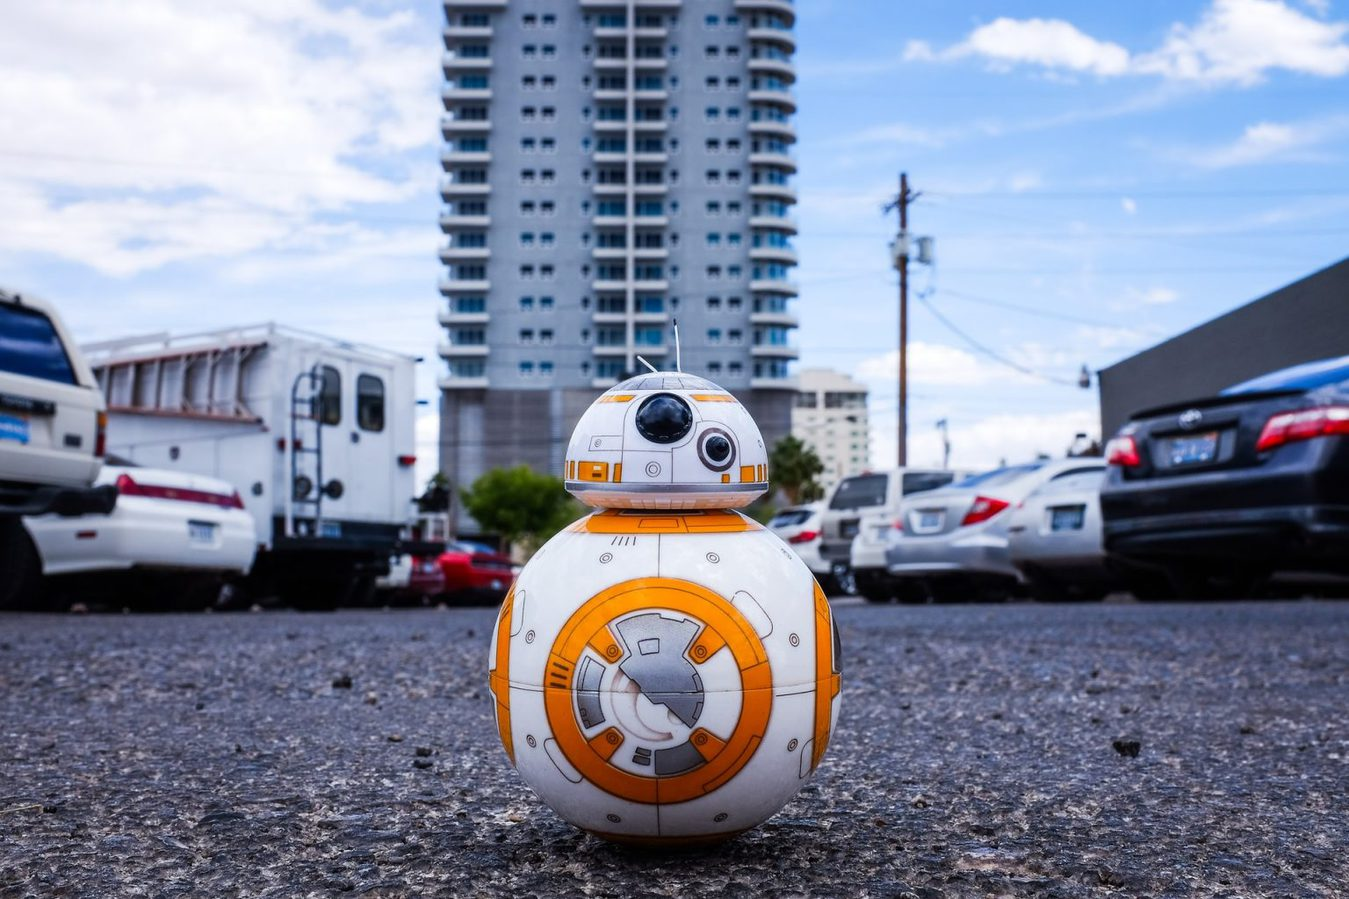 BB8 robot in a parking lot